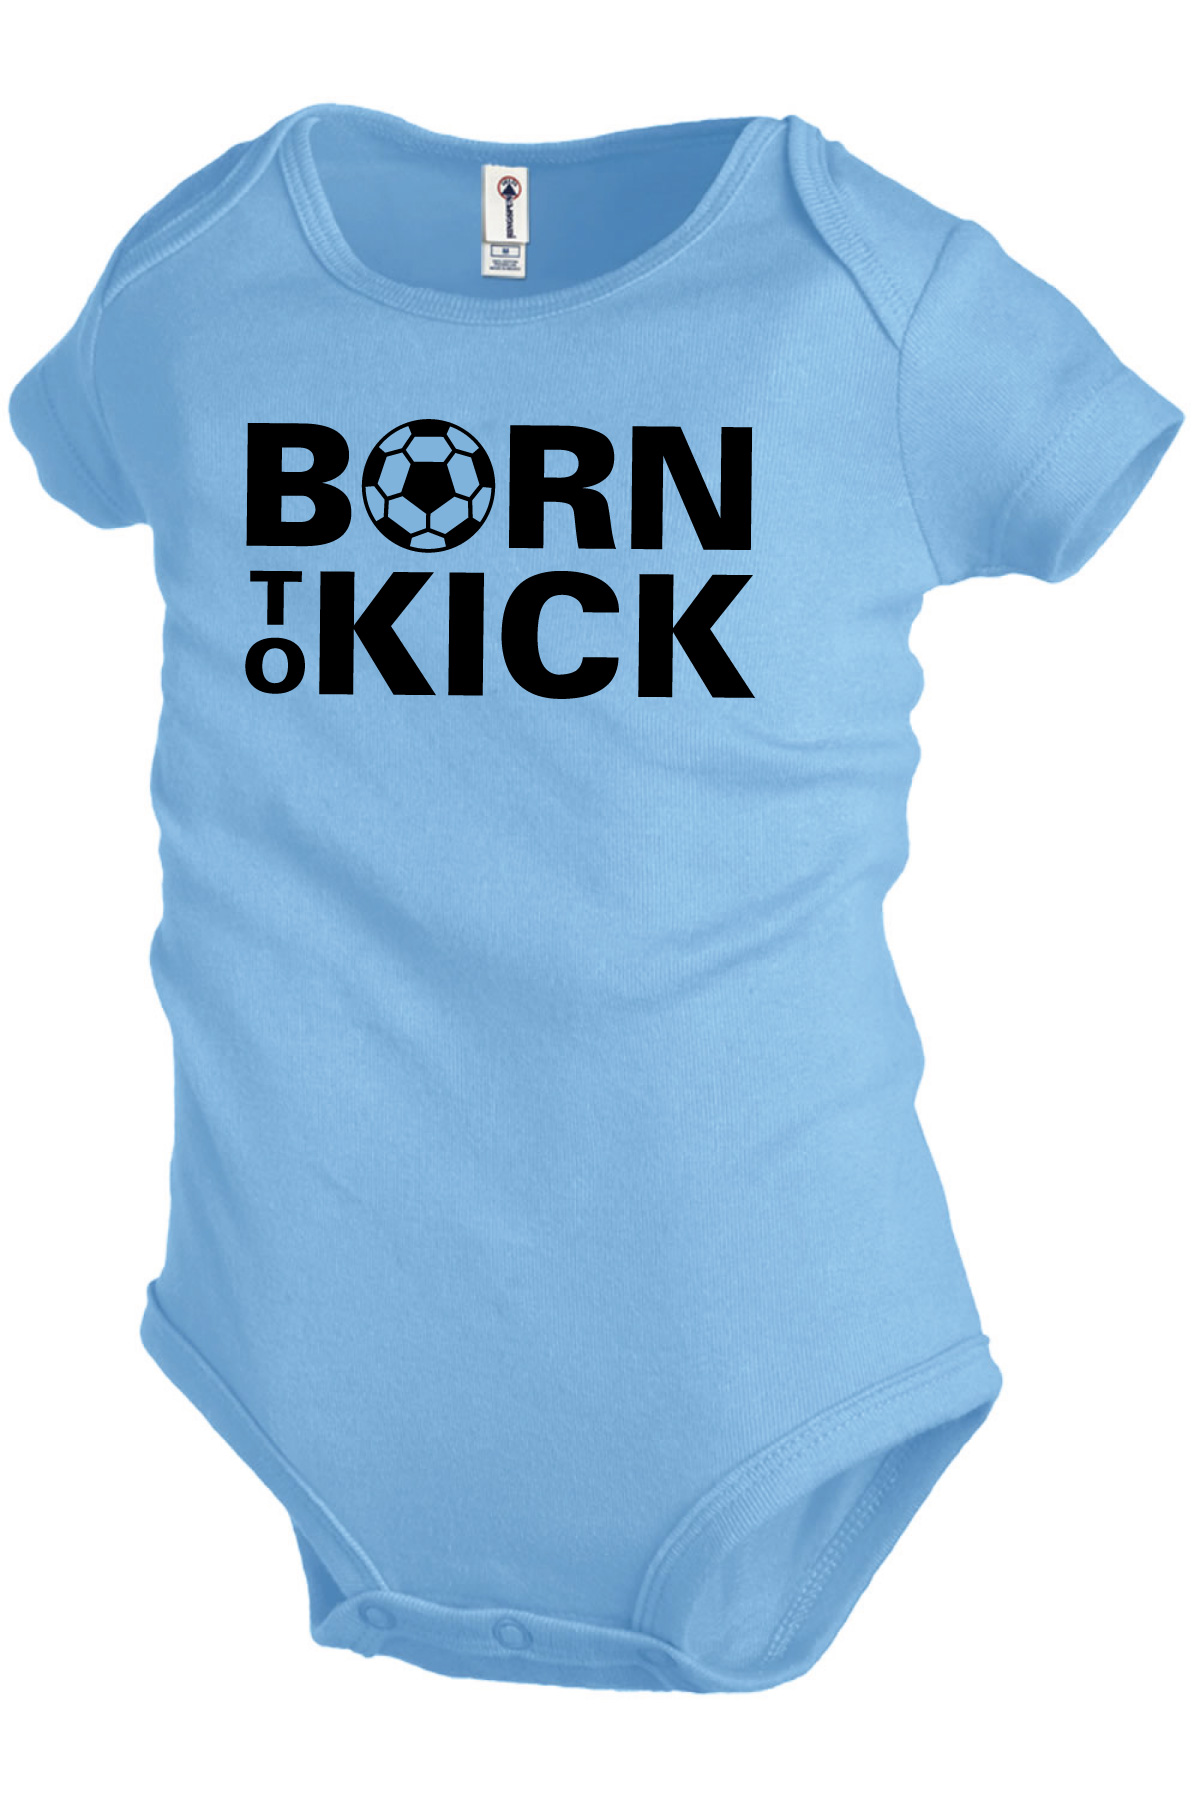 Born To Kick baby soccer onesie in sky blue by Code Four Athletics